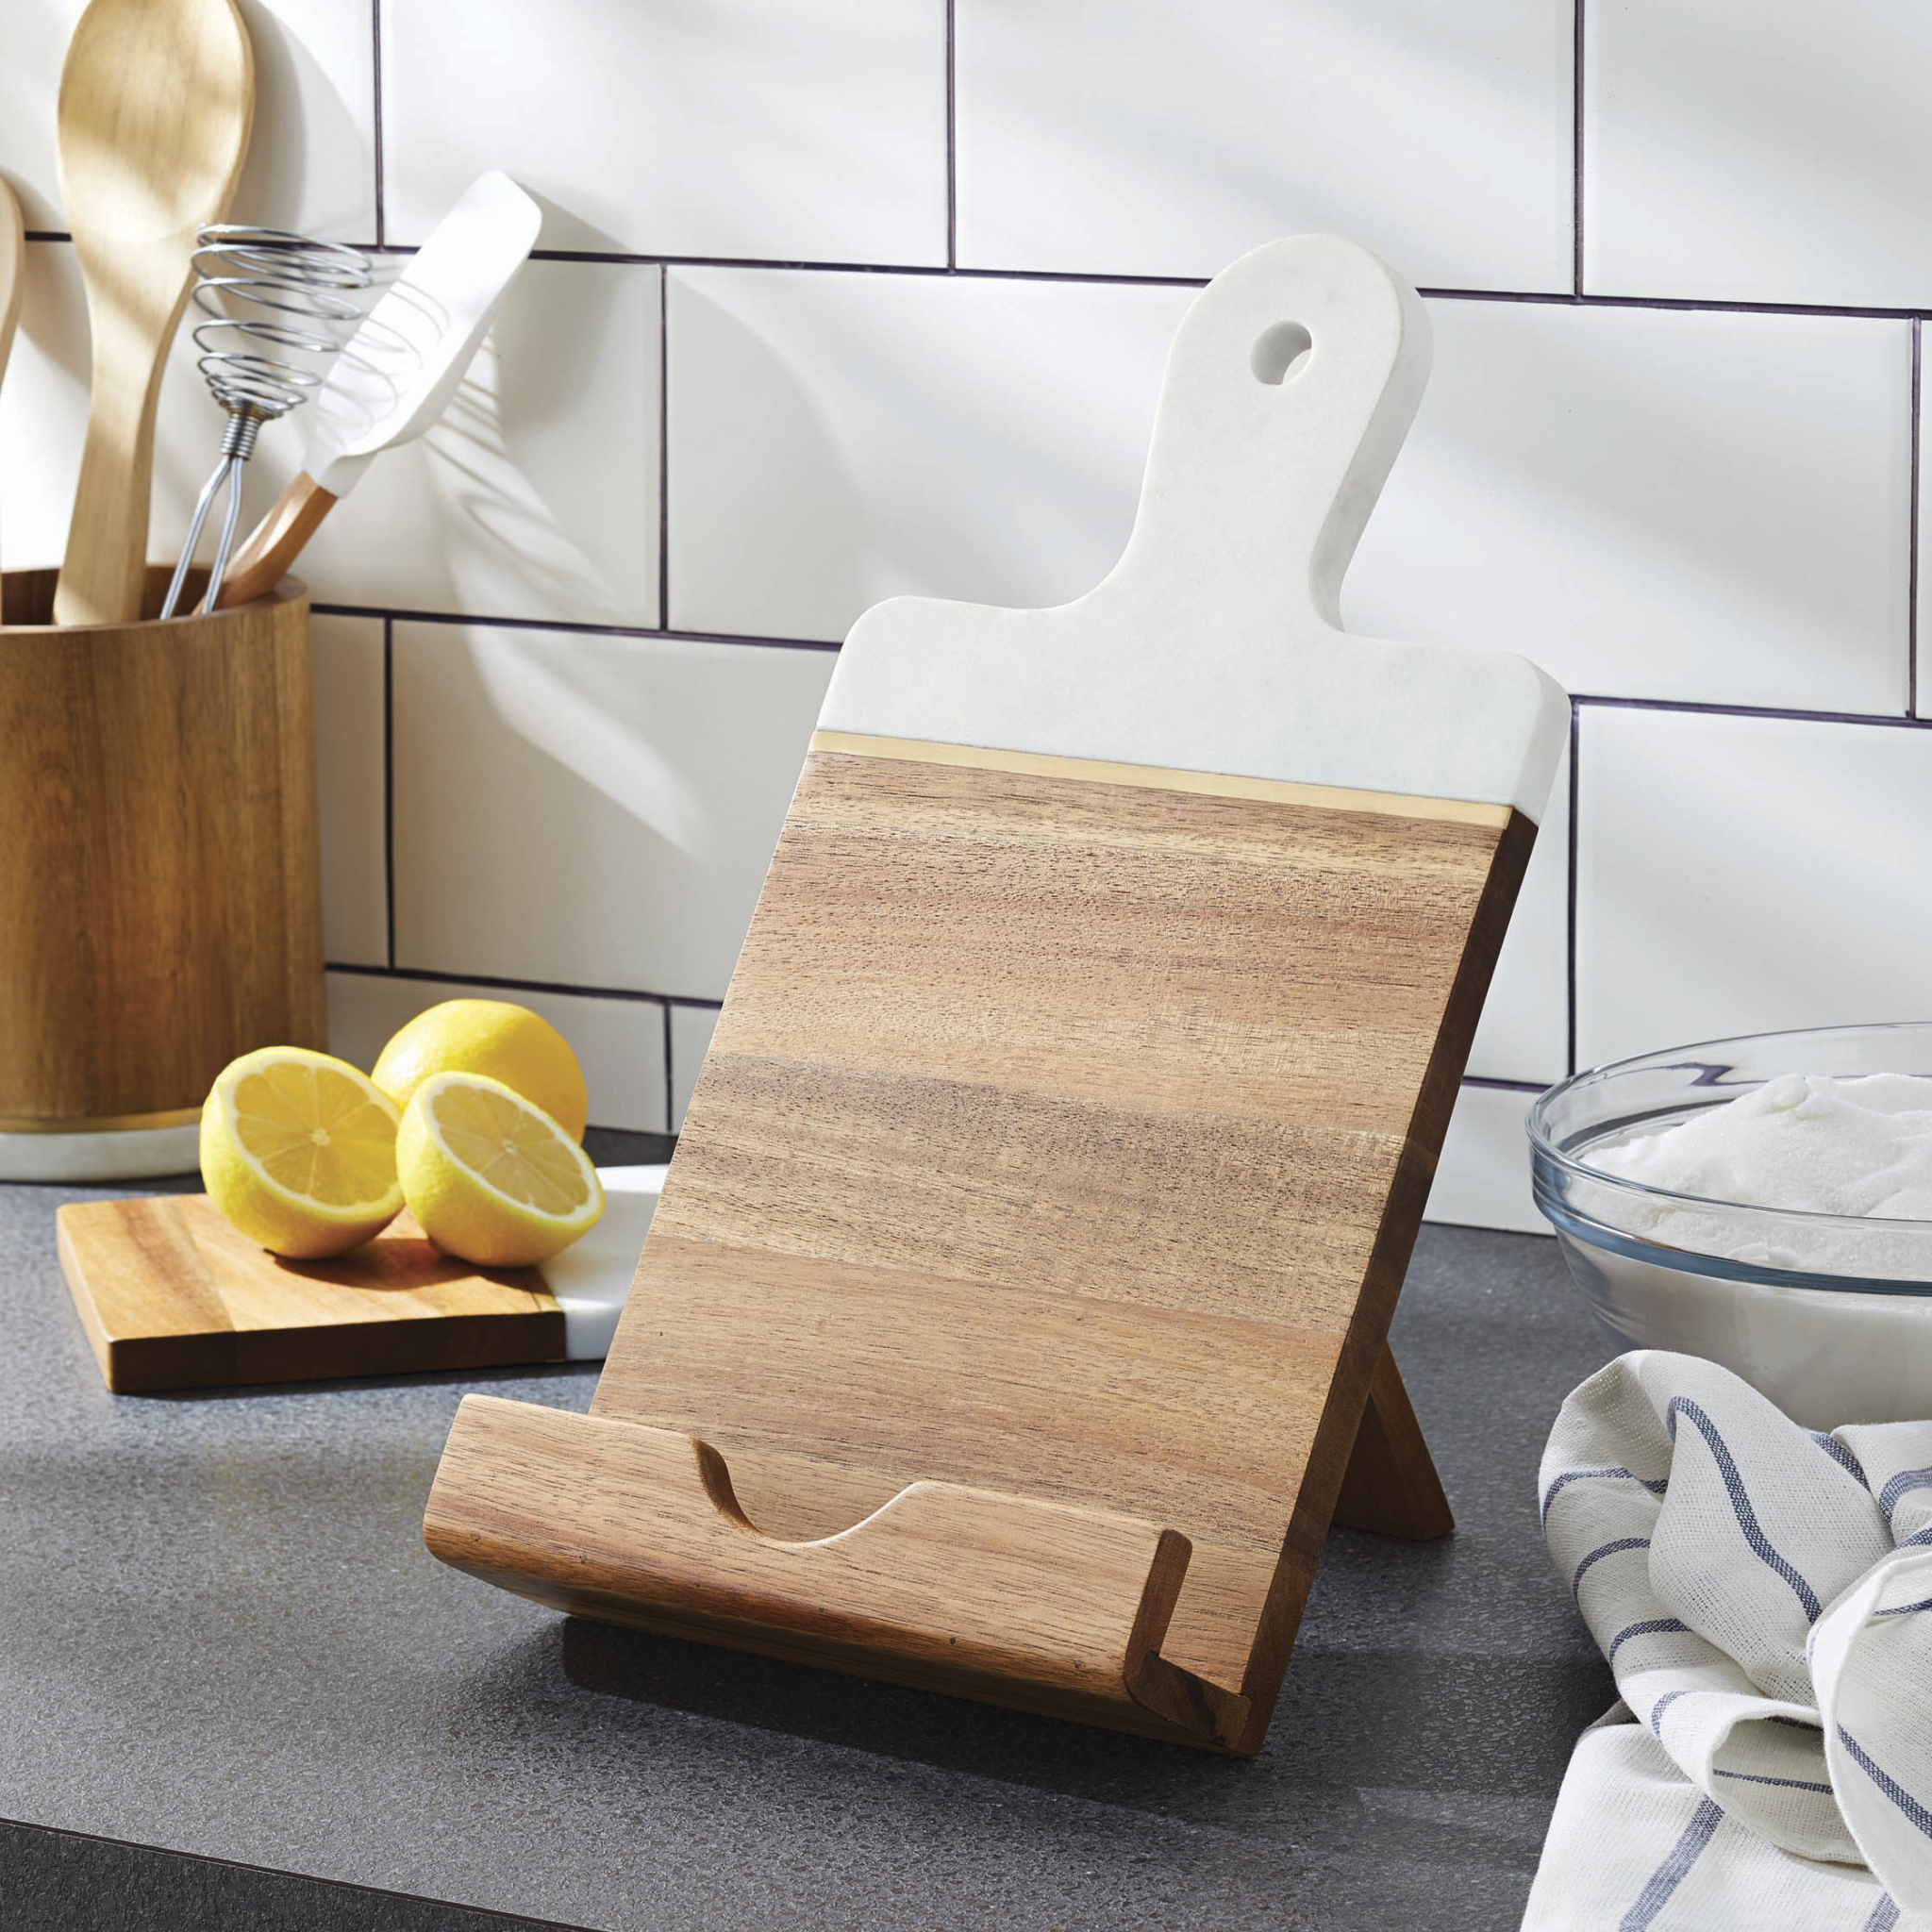 Better Homes & Gardens Acacia Wood and Marble Cookbook/Tablet Holder